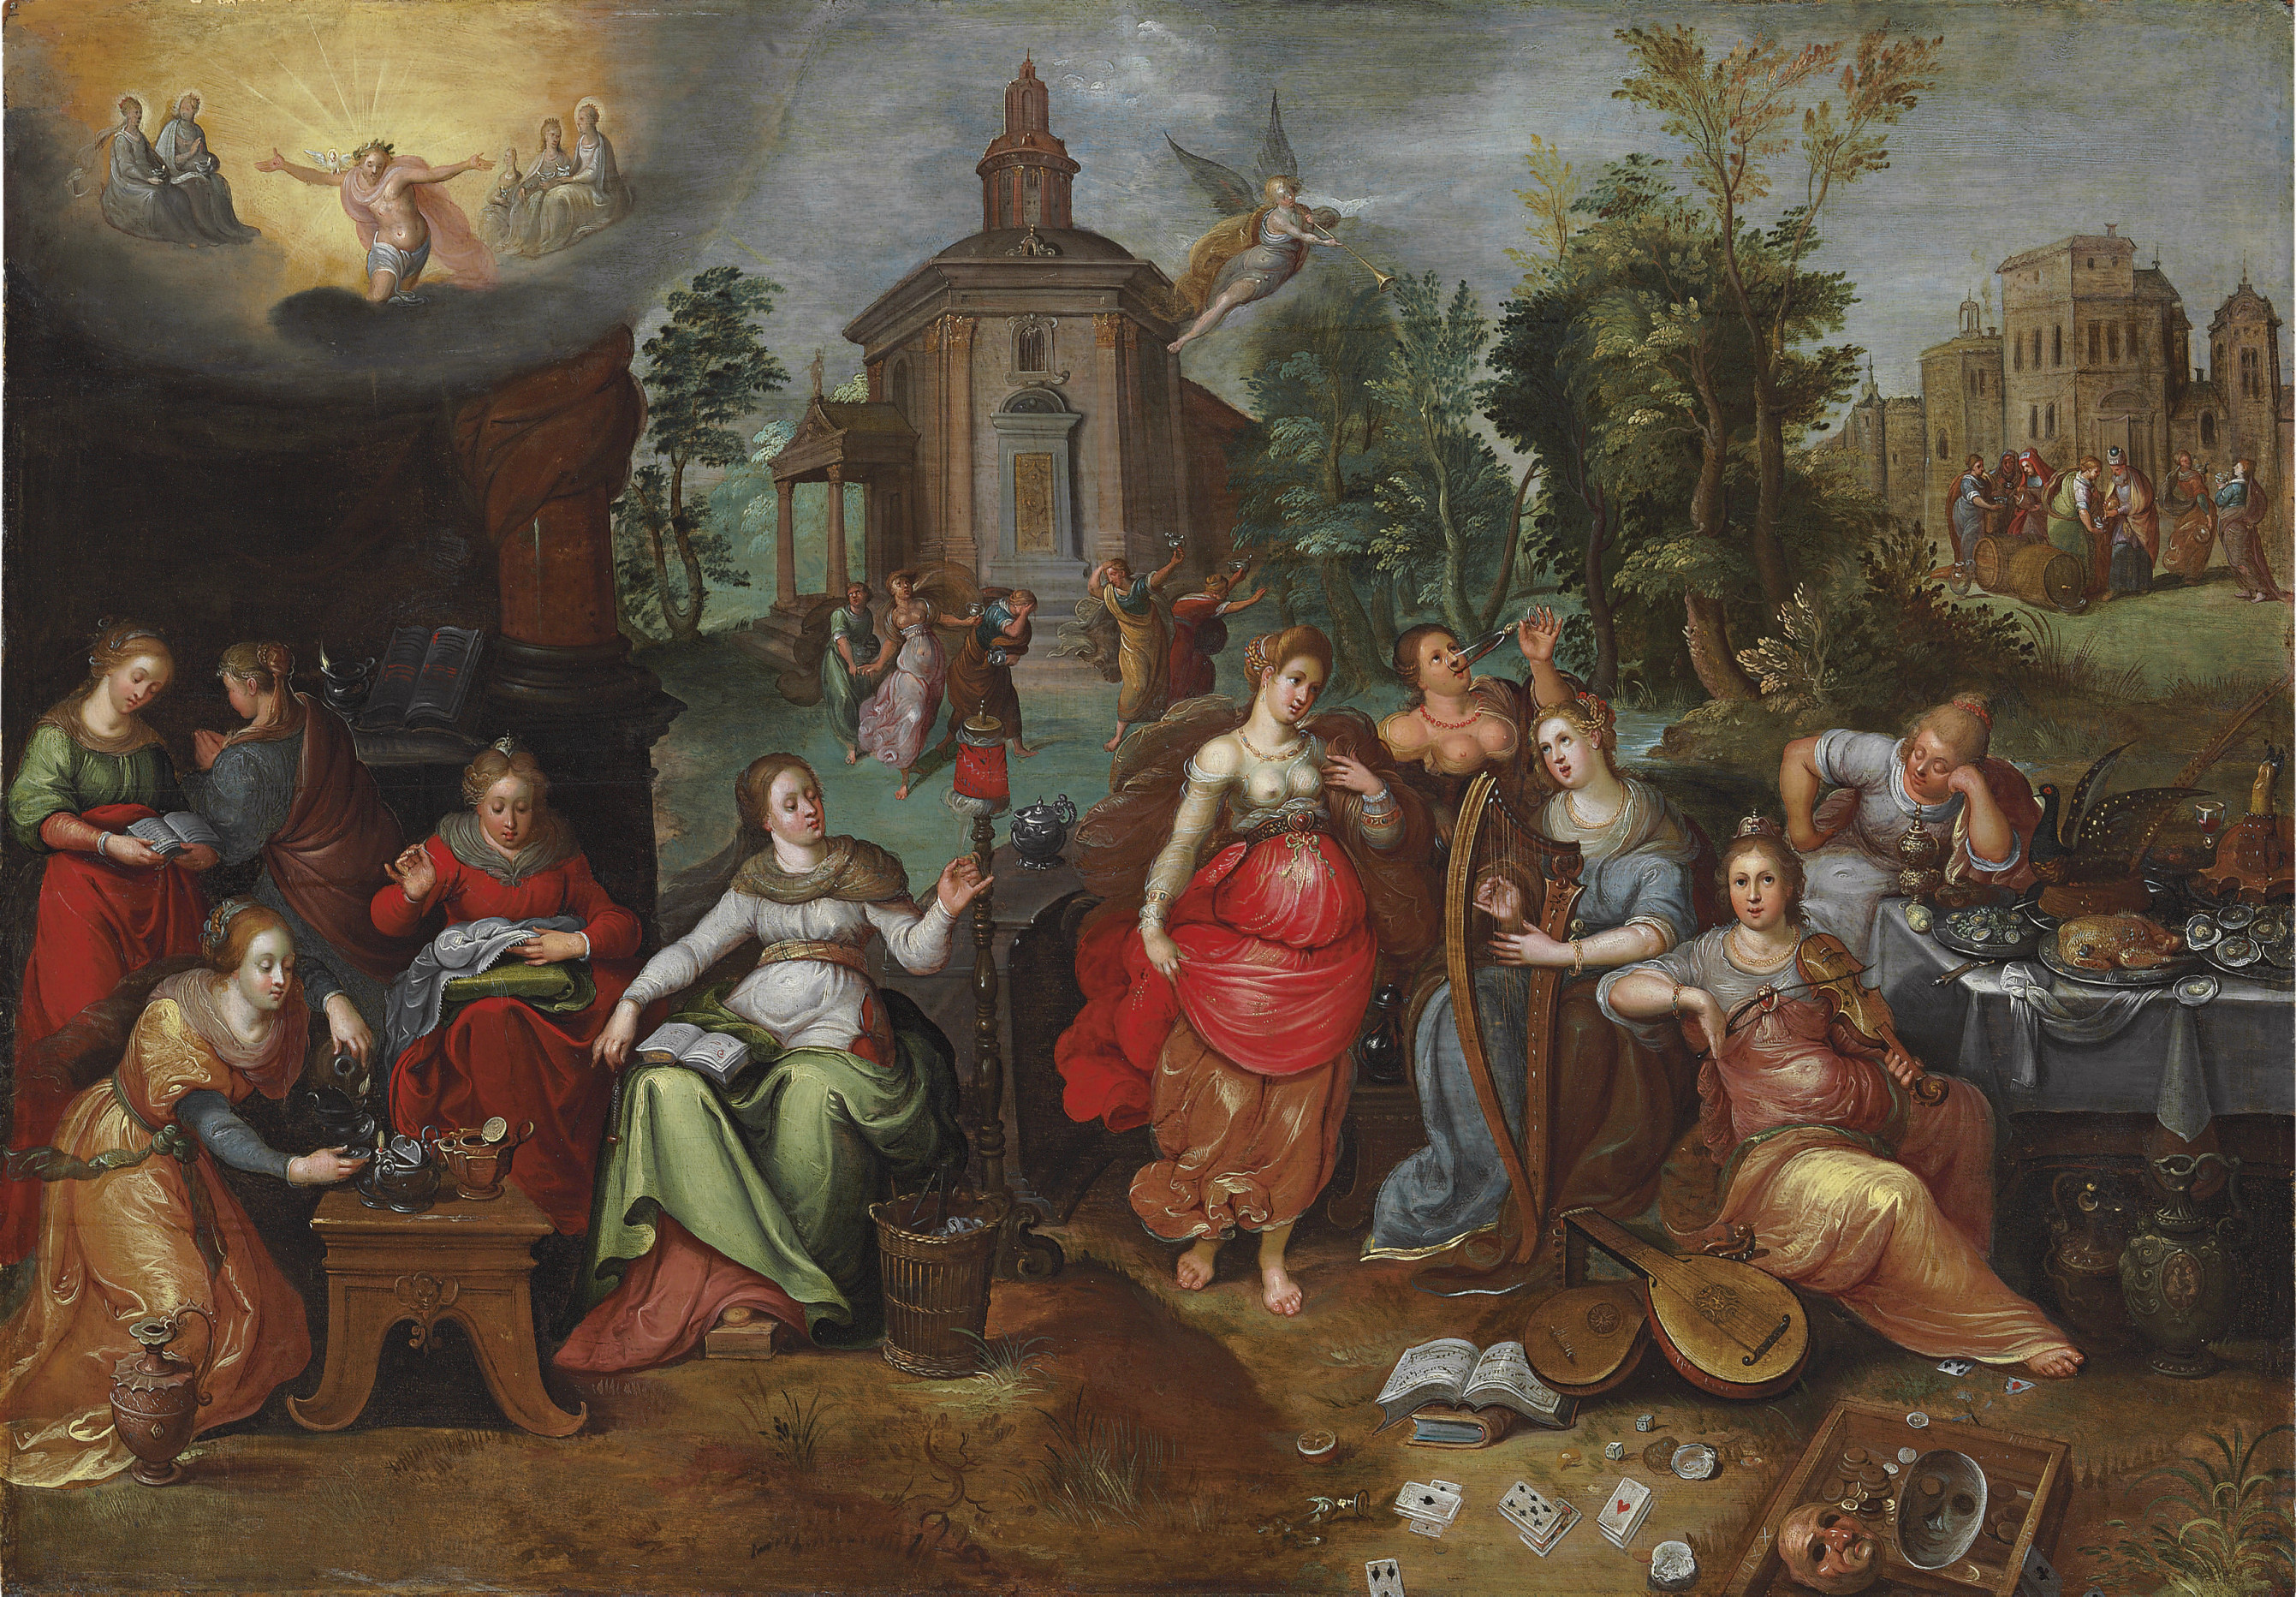 The Parable of the Wise and Foolish Virgins